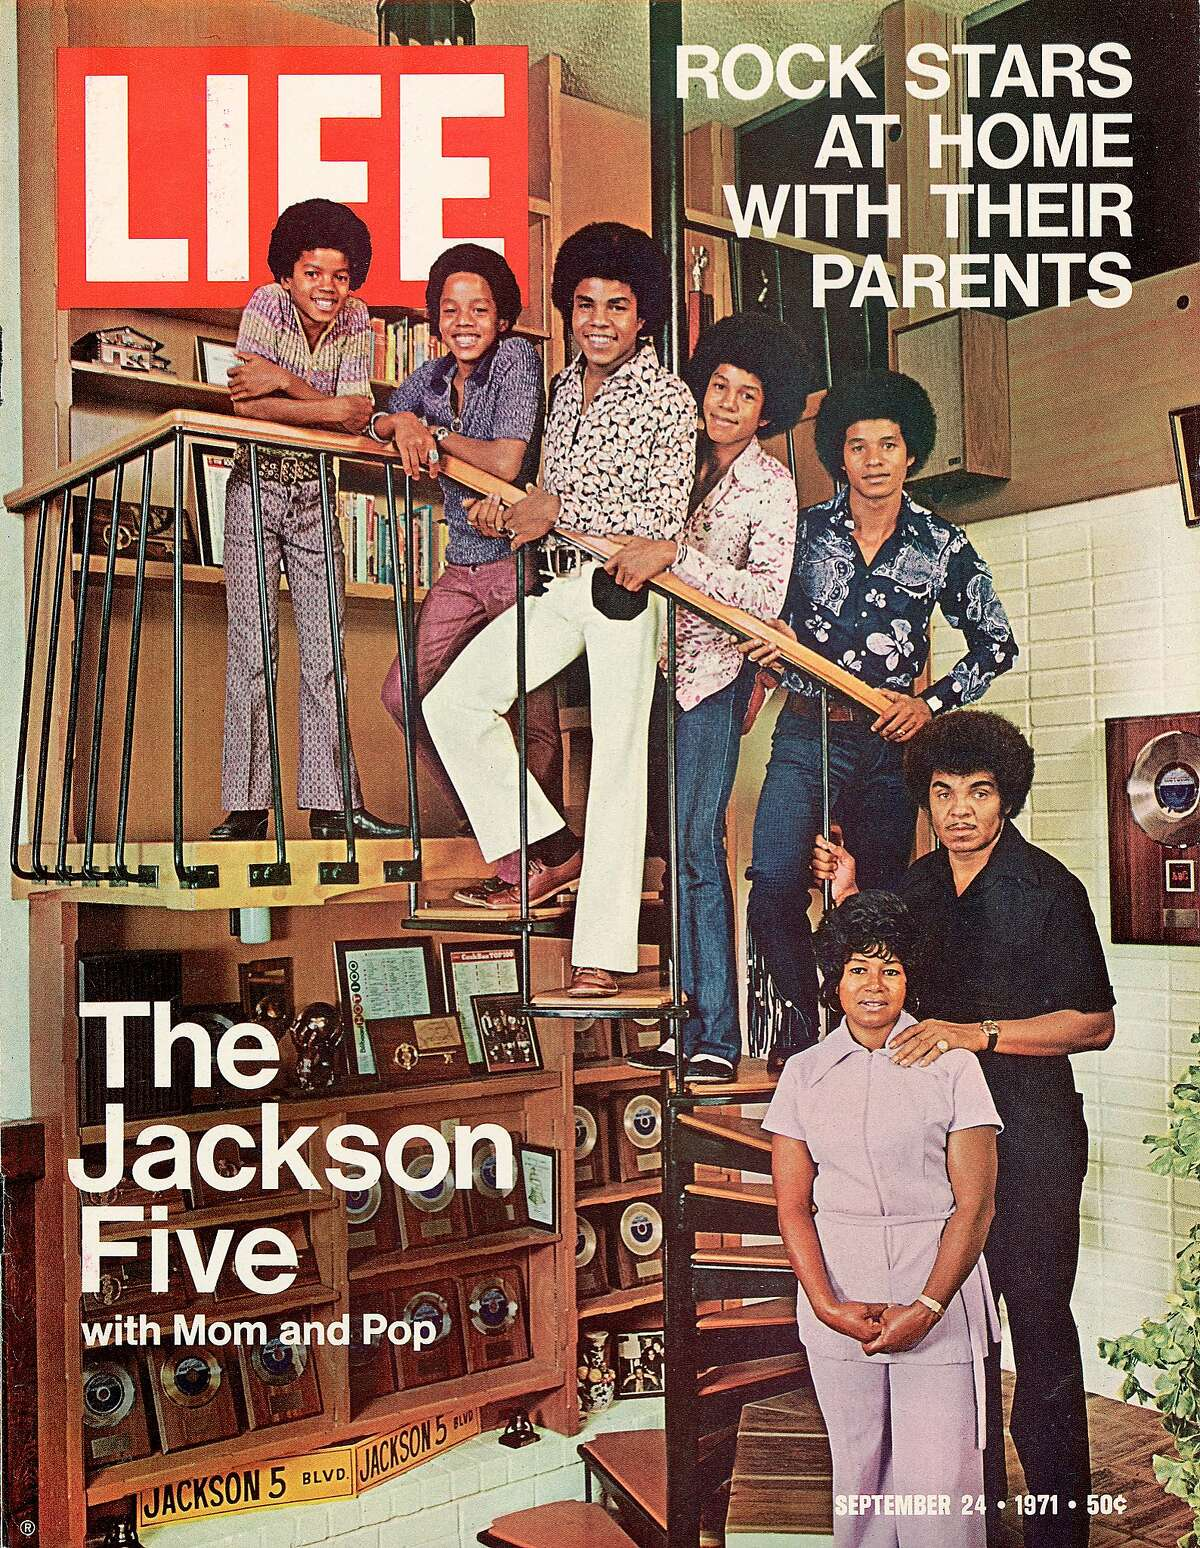 A 1971 LIFE cover featuring The Jackson Five with their mother and father, Joseph and Katherine.